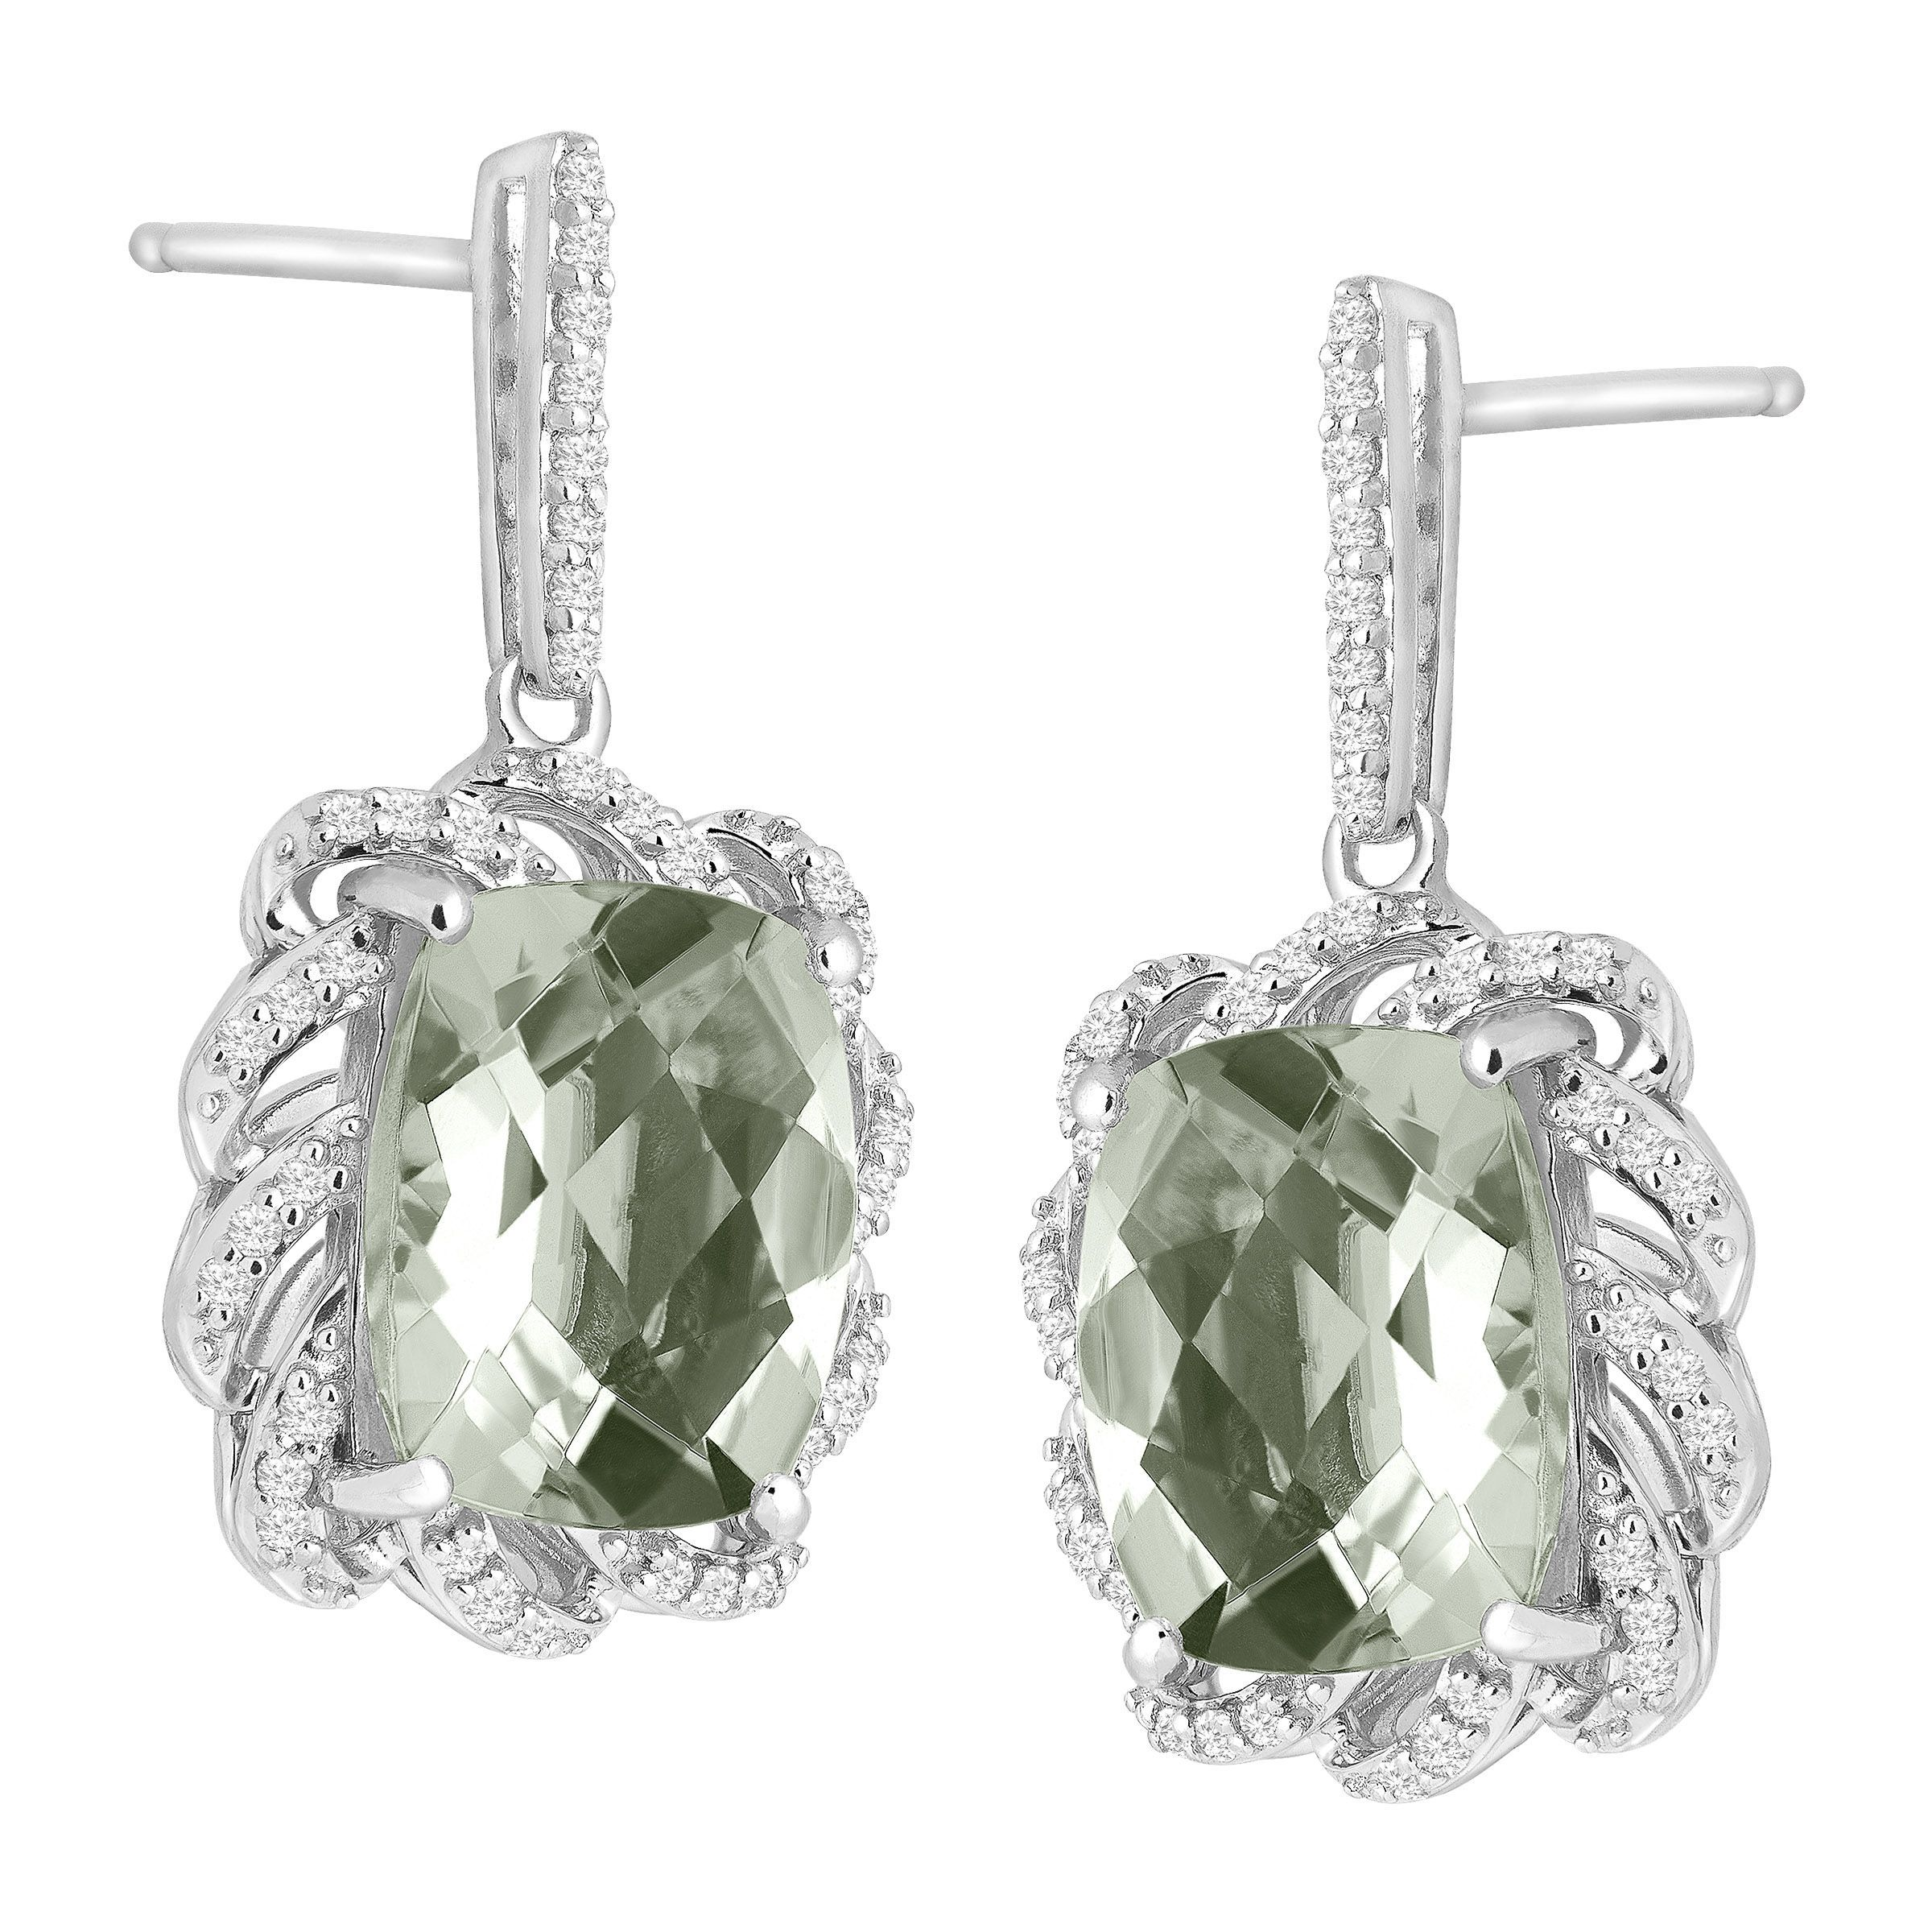 kikimcdonough pair earrings occasion for amethyst pin of a green wonderful statementearrings that special